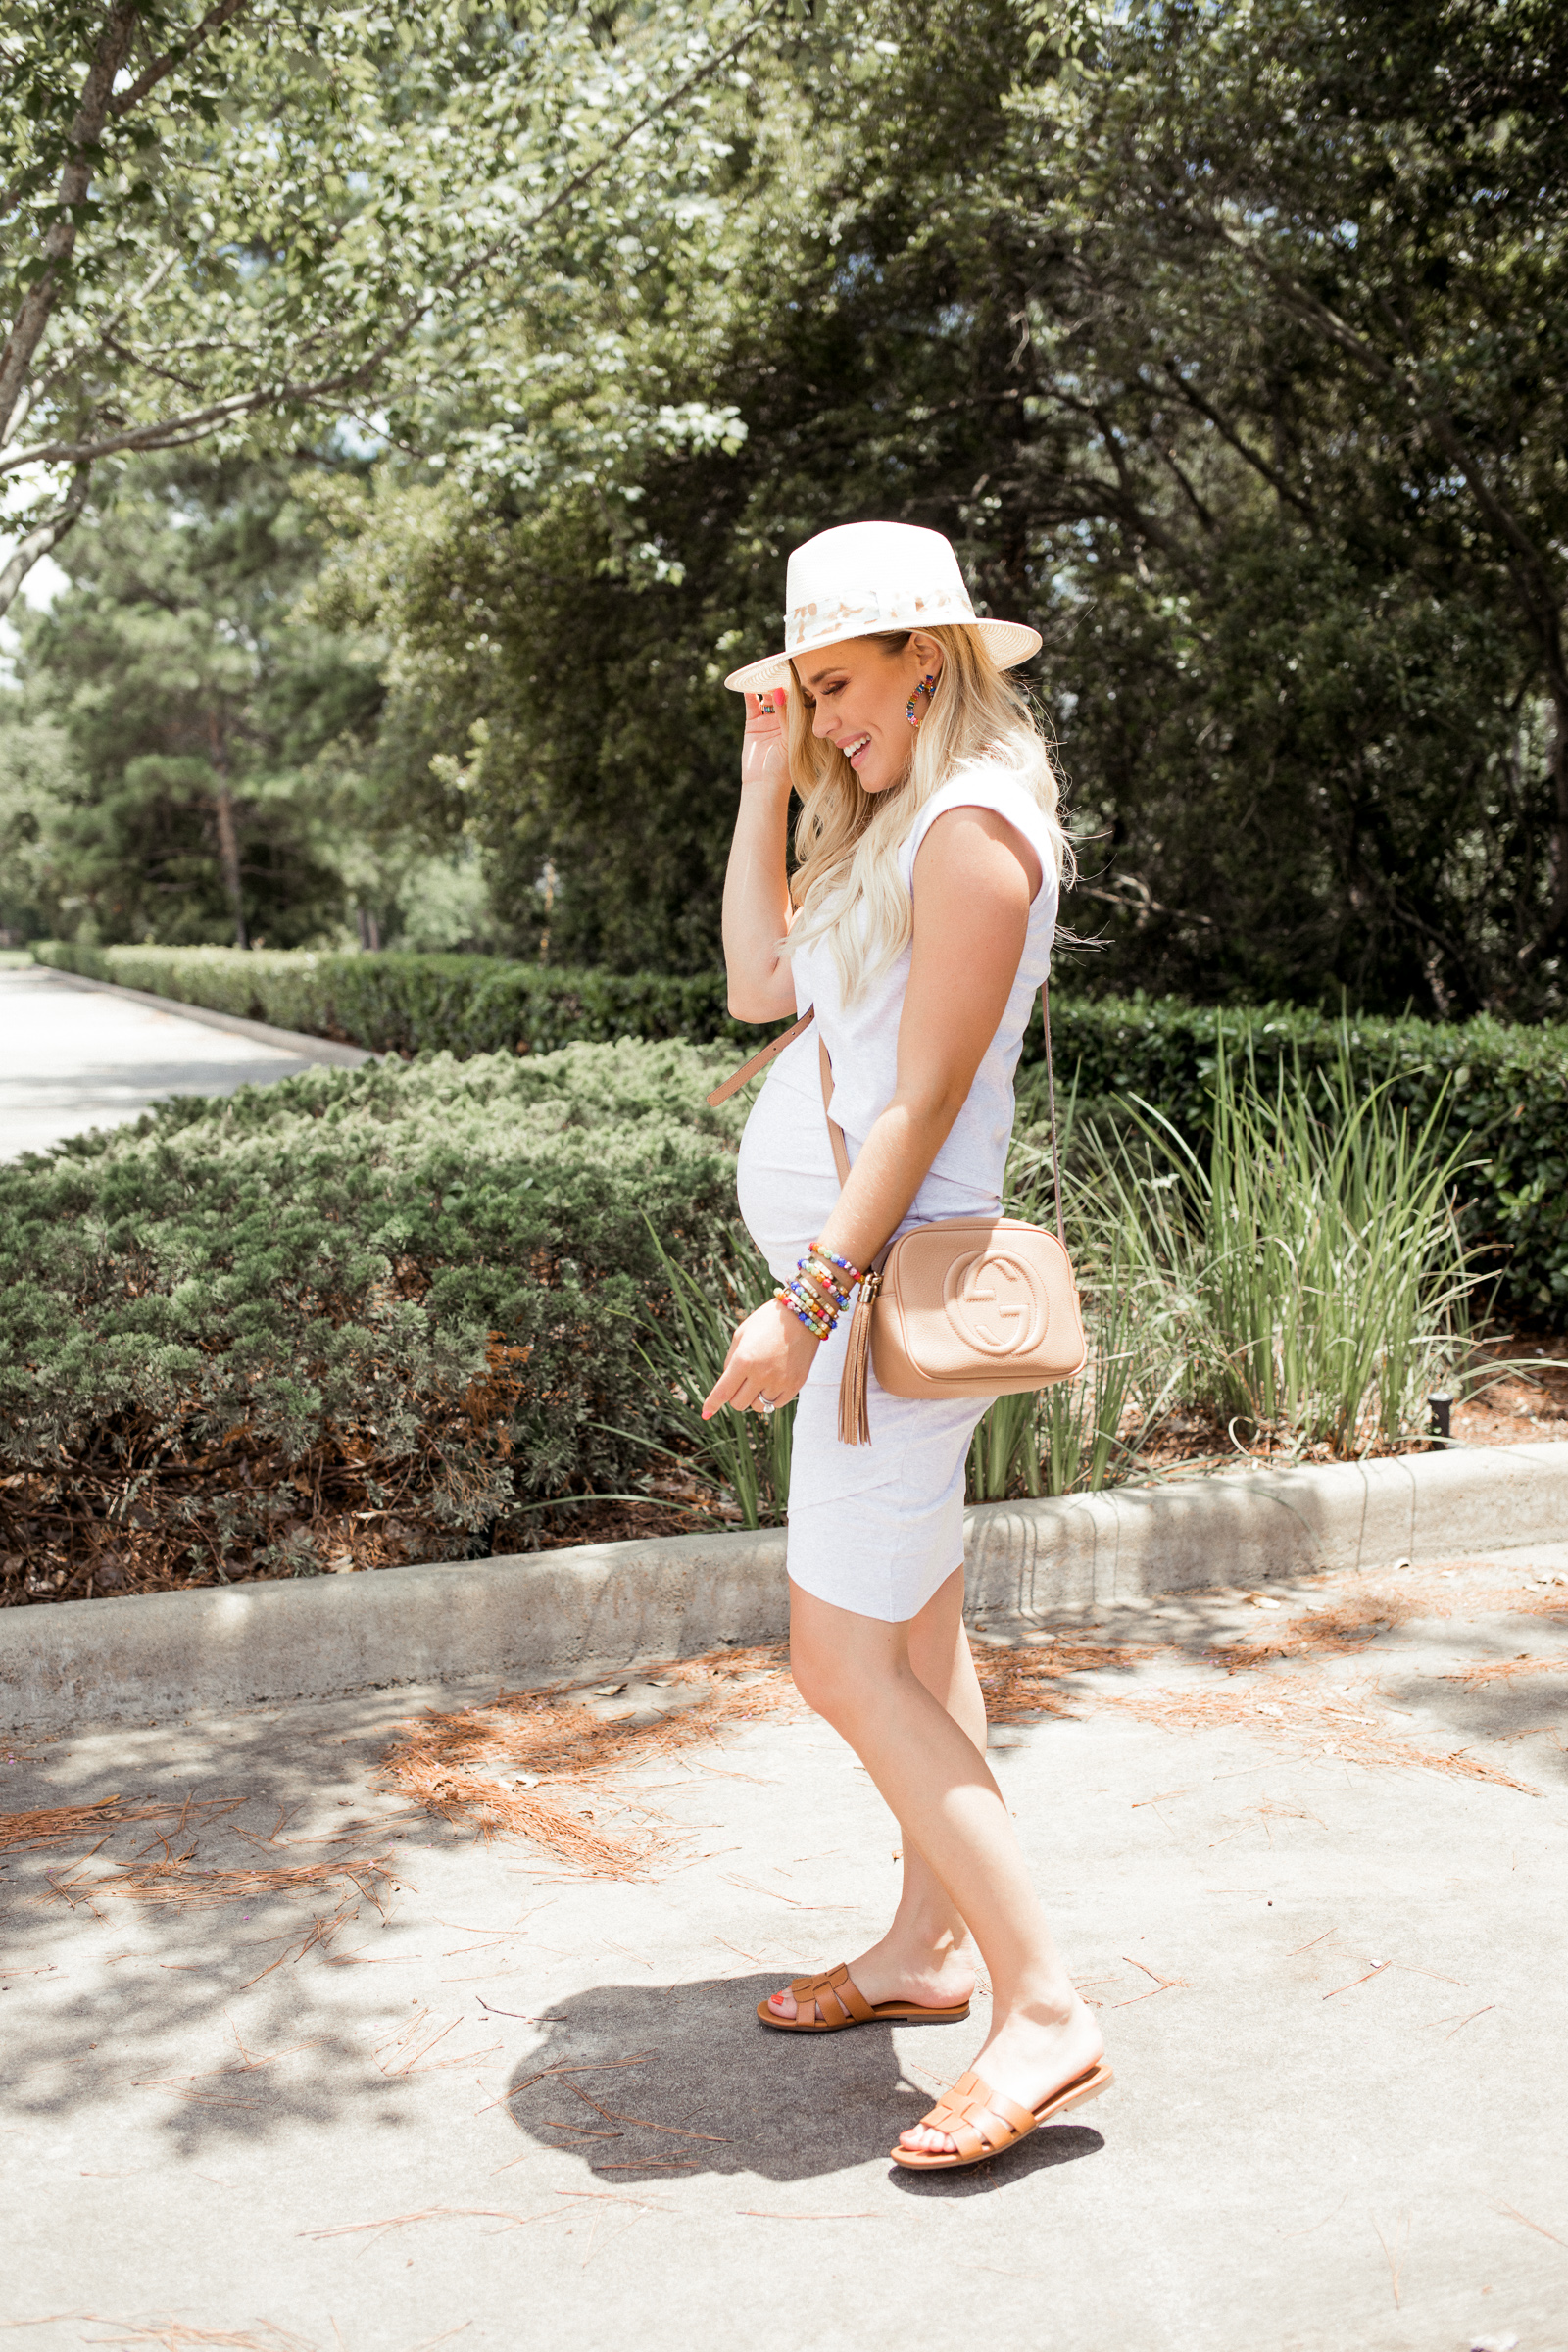 ddcd6d4d71141 Houston fashion blogger Uptown with Elly Brown shares her favorite place to  buy chic maternity clothes